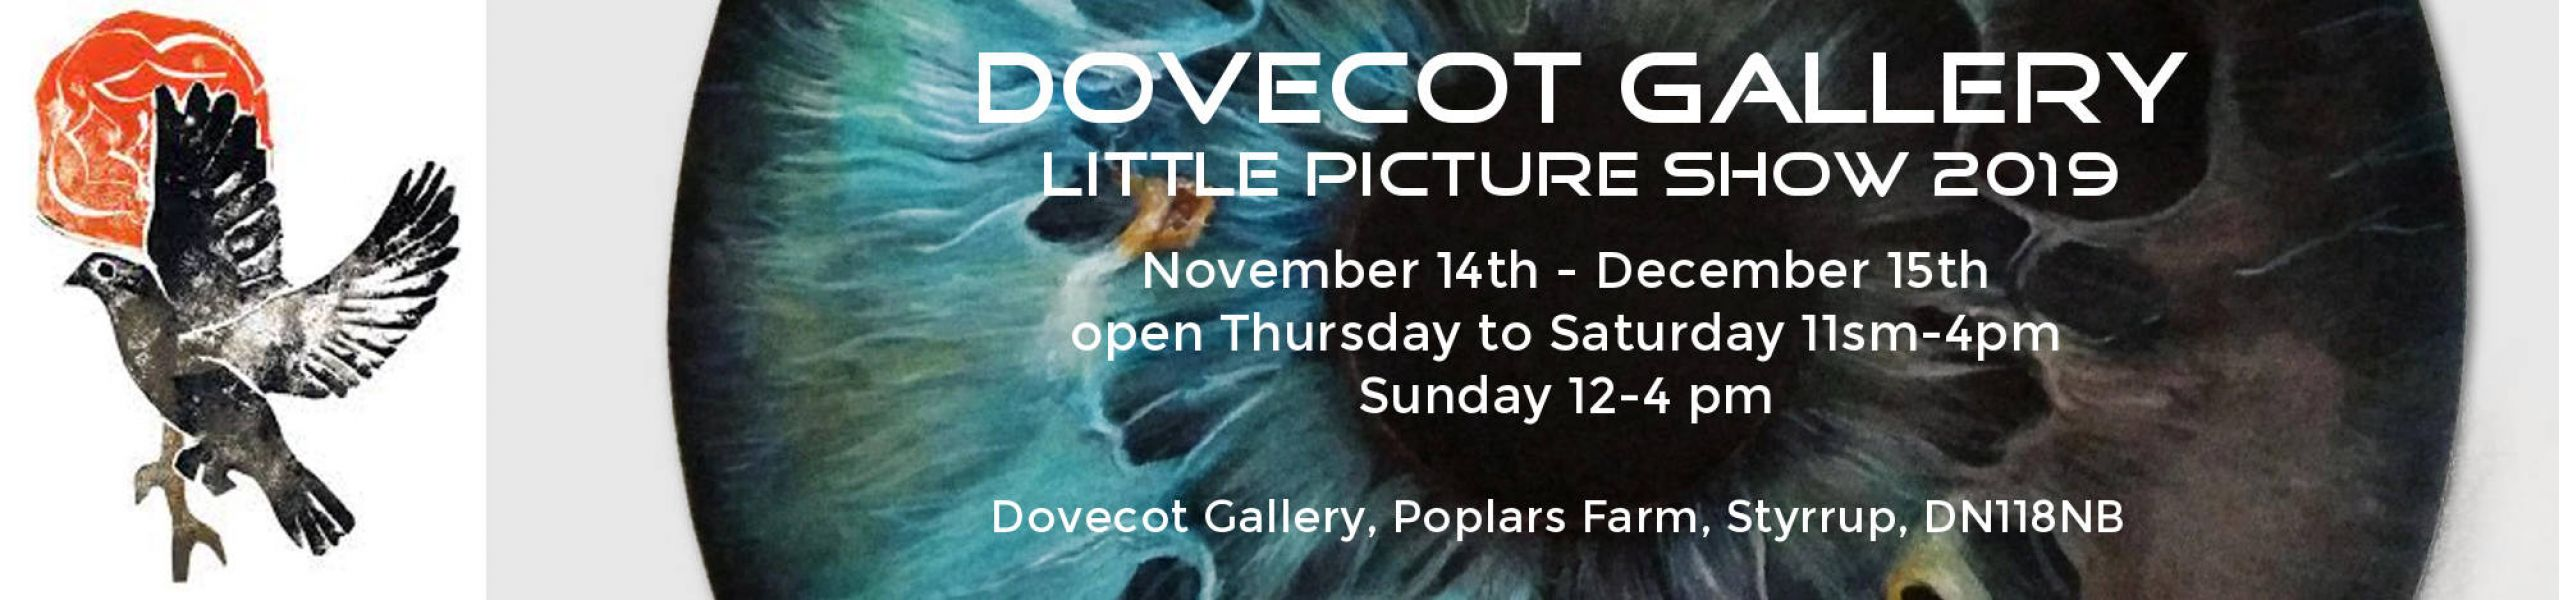 Dovecot Gallery - Doncaster- Elisa Neri